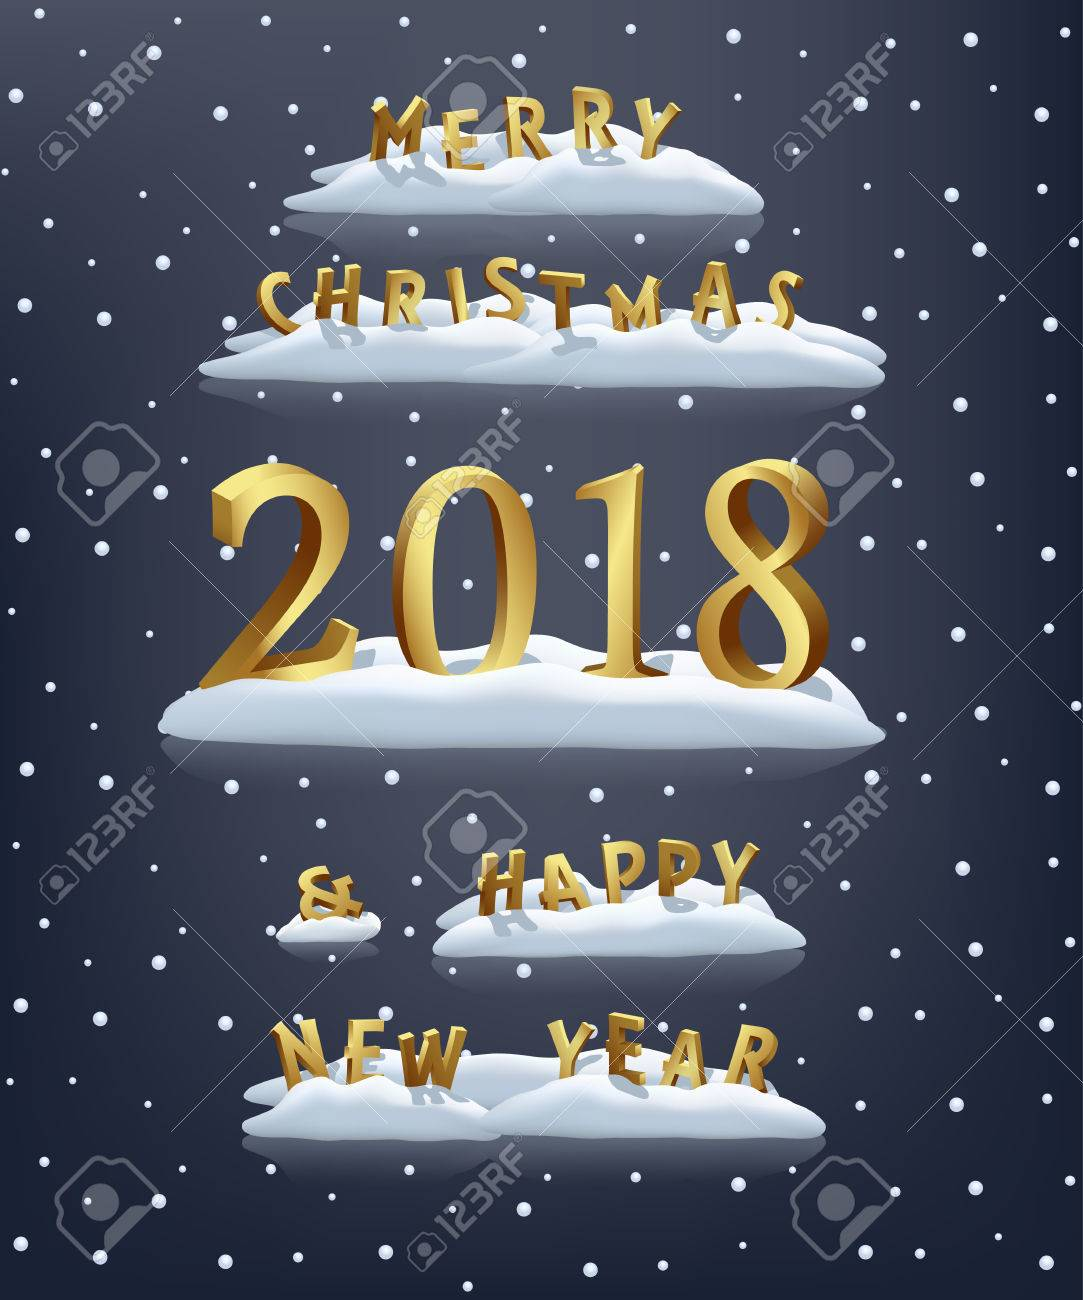 vector vector merry christmas and happy new year 2018 templatechristmas and new year design elements